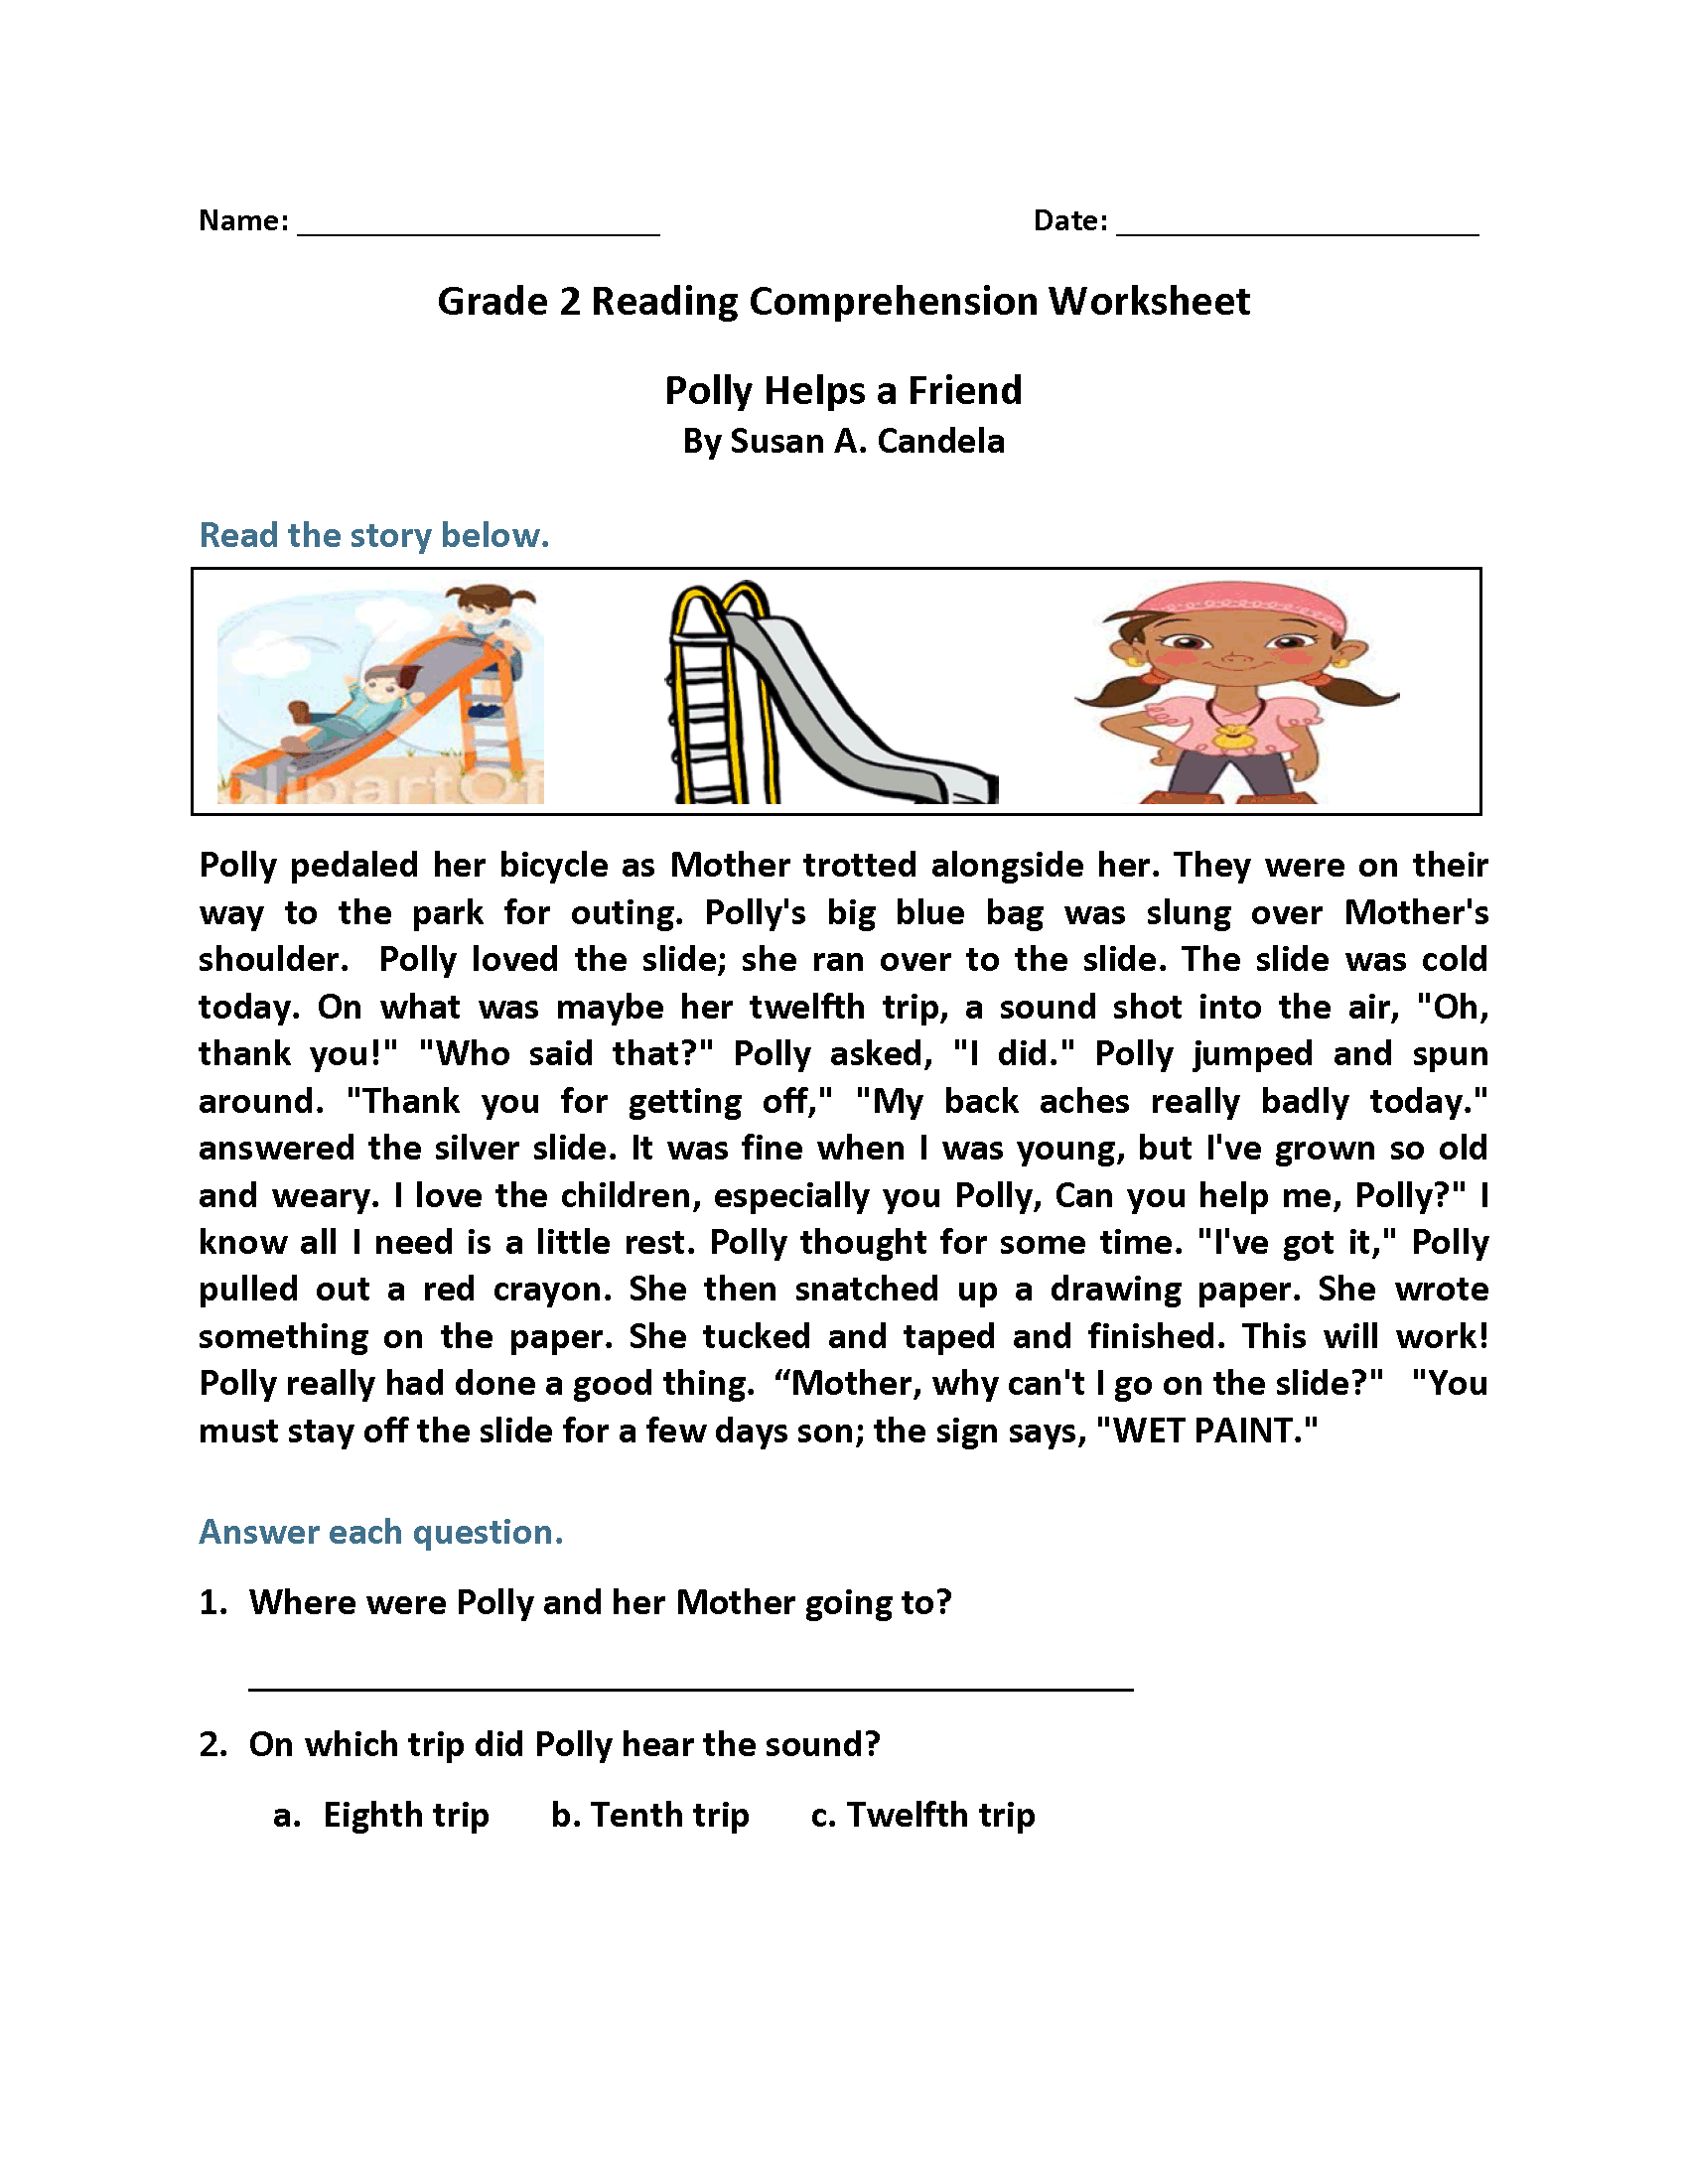 Polly Helps A Friend Second Grade Reading Worksheets Reading Comprehension Worksheets Reading Comprehension 2nd Grade Reading Worksheets [ 2200 x 1700 Pixel ]